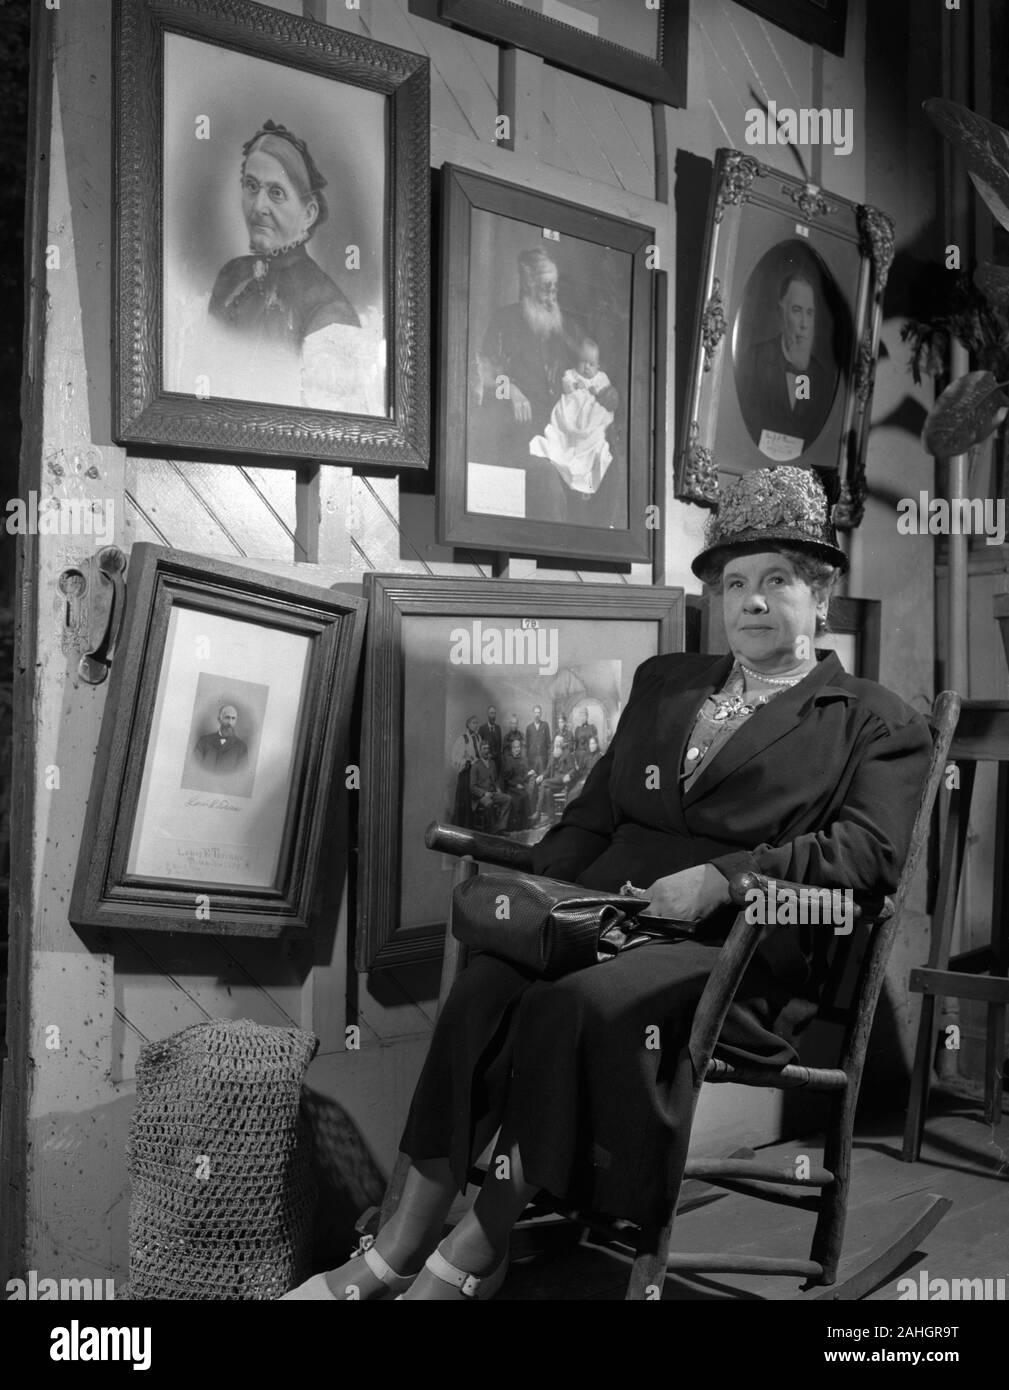 Woman seated in front of portraits of family members, 1946. This was part of the Minnesota State Fair in 1946, where people stood in front of portraits of their grandparents to illustrate genealogical traits. One of the portraits bears the name Louis E. Torinus Stock Photo